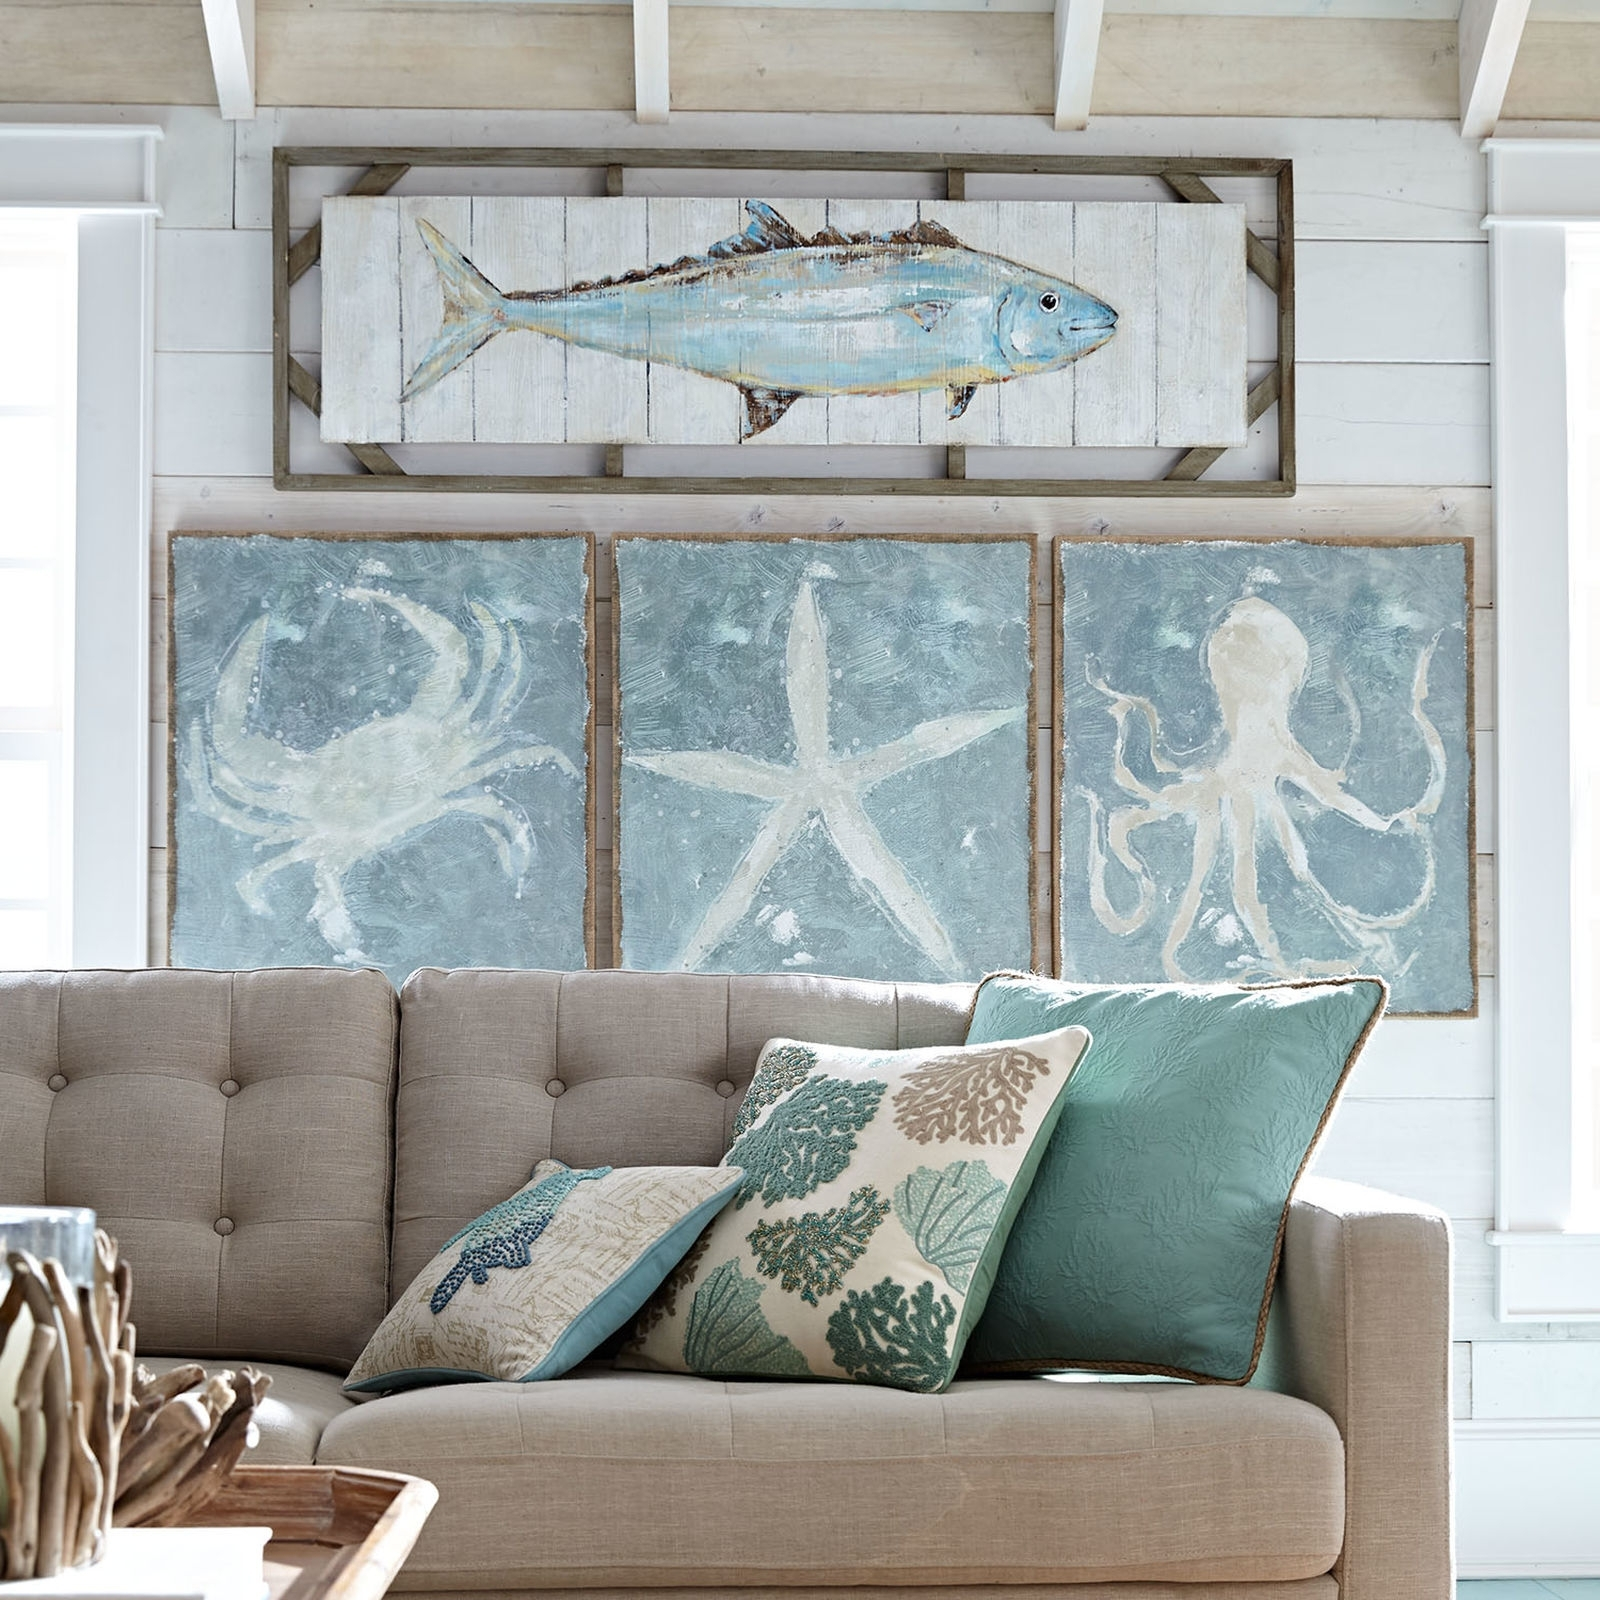 Liven Up Your Walls With Our Marine Life Art (View 10 of 15)